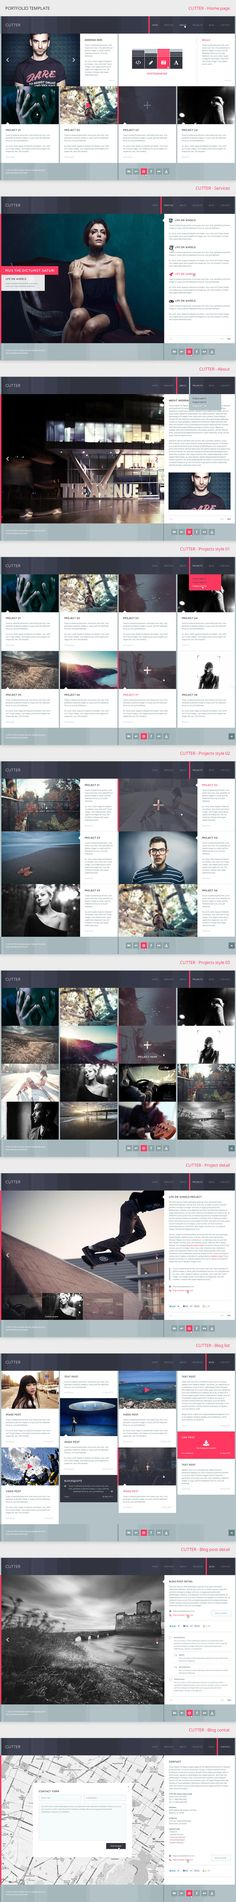 CUTTER - Fullwidth Portfolio via @Behance http://www.behance.net/gallery/CUTTER-Fullwidth-Portfolio-Template/9173563?utm_source=Triggermail_medium=email_campaign=Net%20Project%20Published